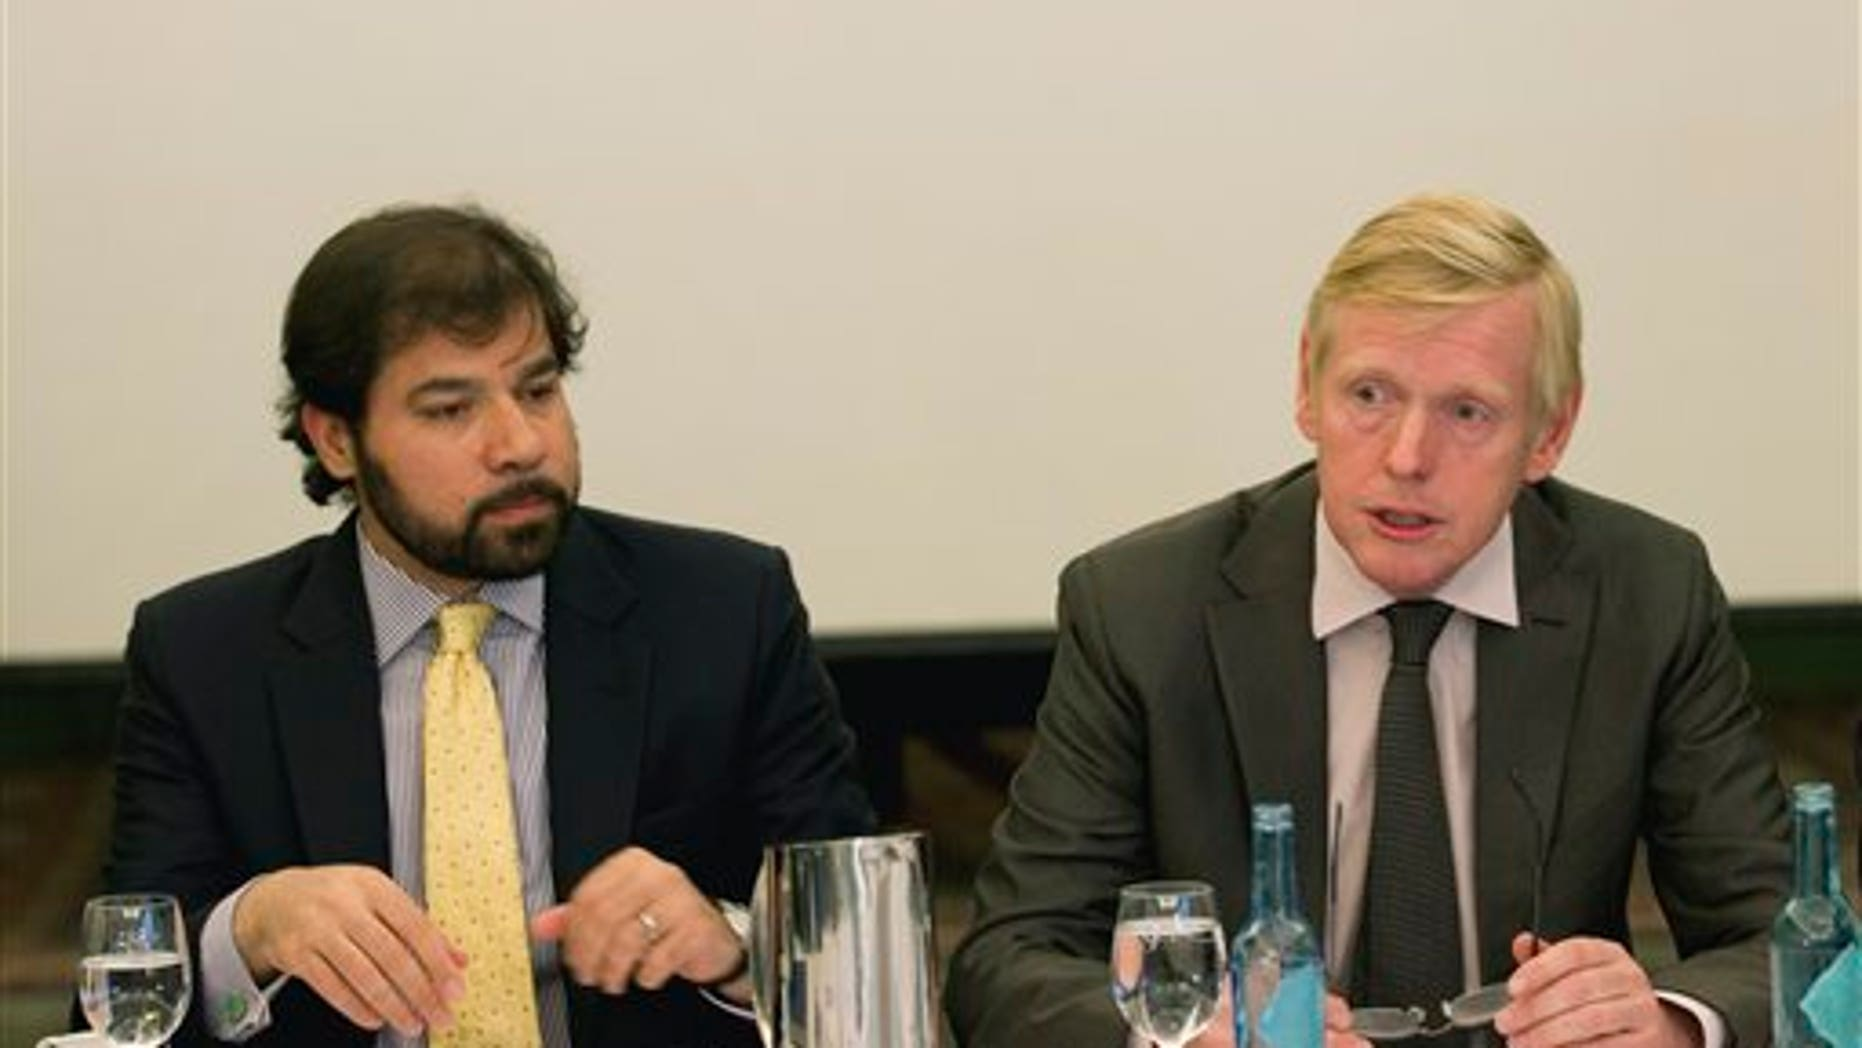 September 30: Afghanistan's Deputy Foreign Minister Jawed Ludin, left, and representative of the Norwegian Ministry of Foreign Affairs Kare Aas during their meeting in Oslo, Norway.